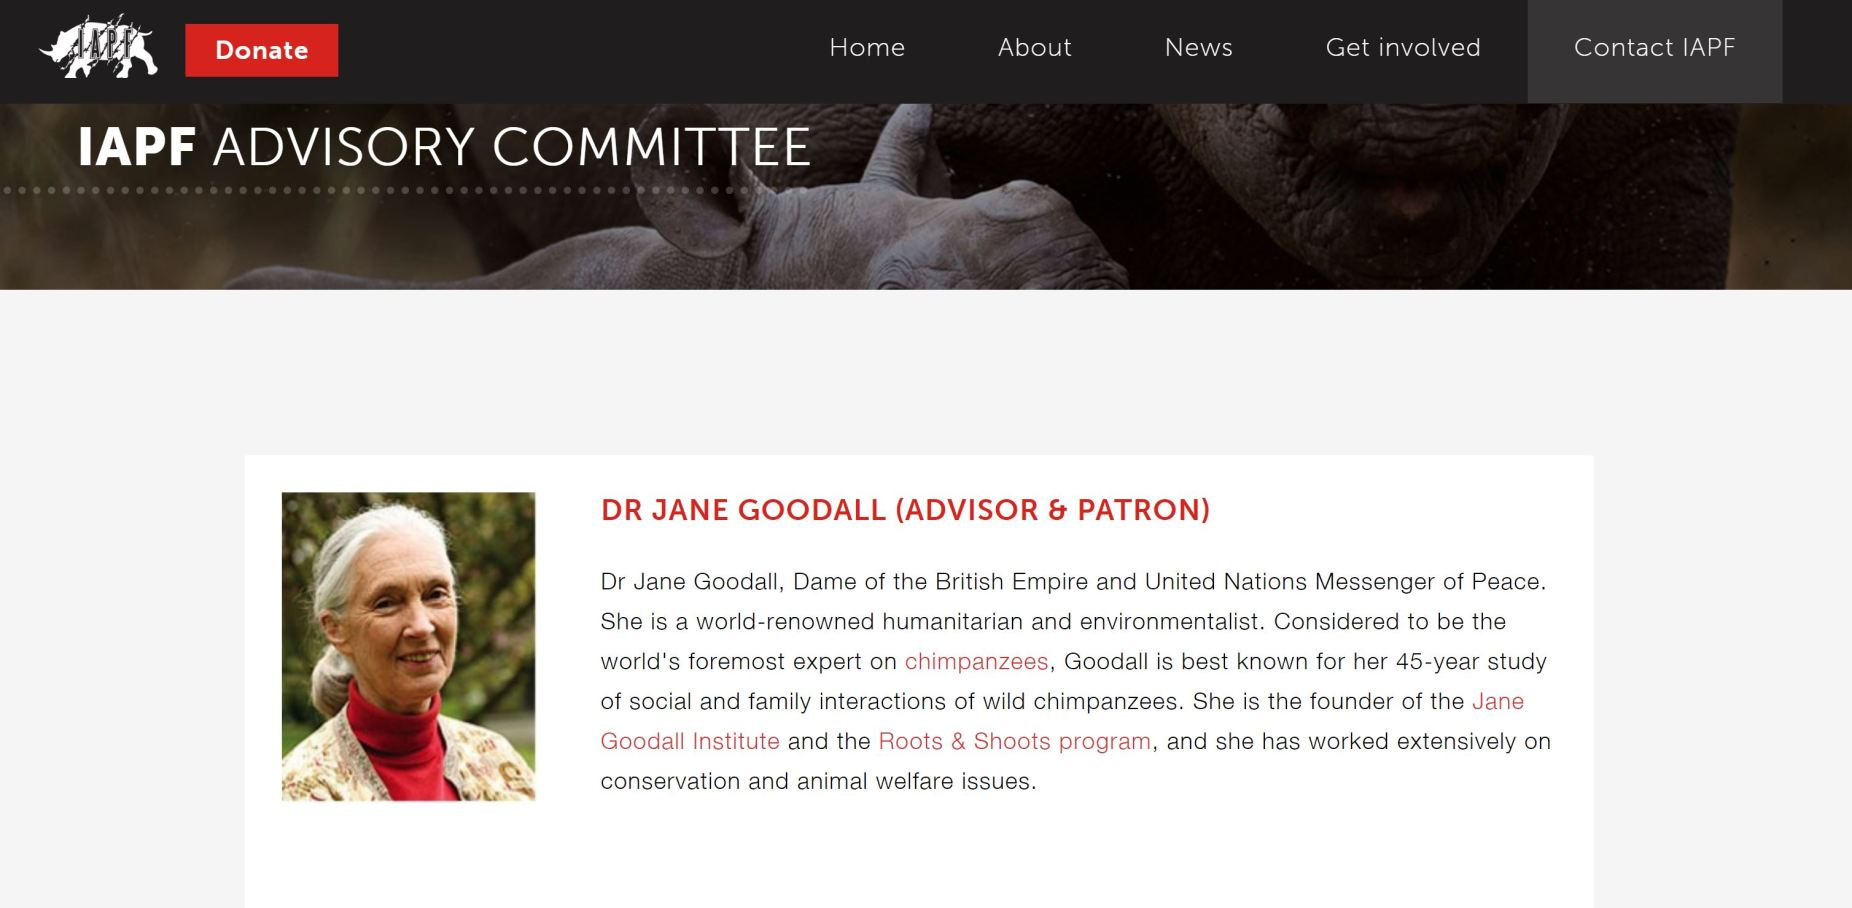 Image: A photo of the IAPF board member Jane Goodall